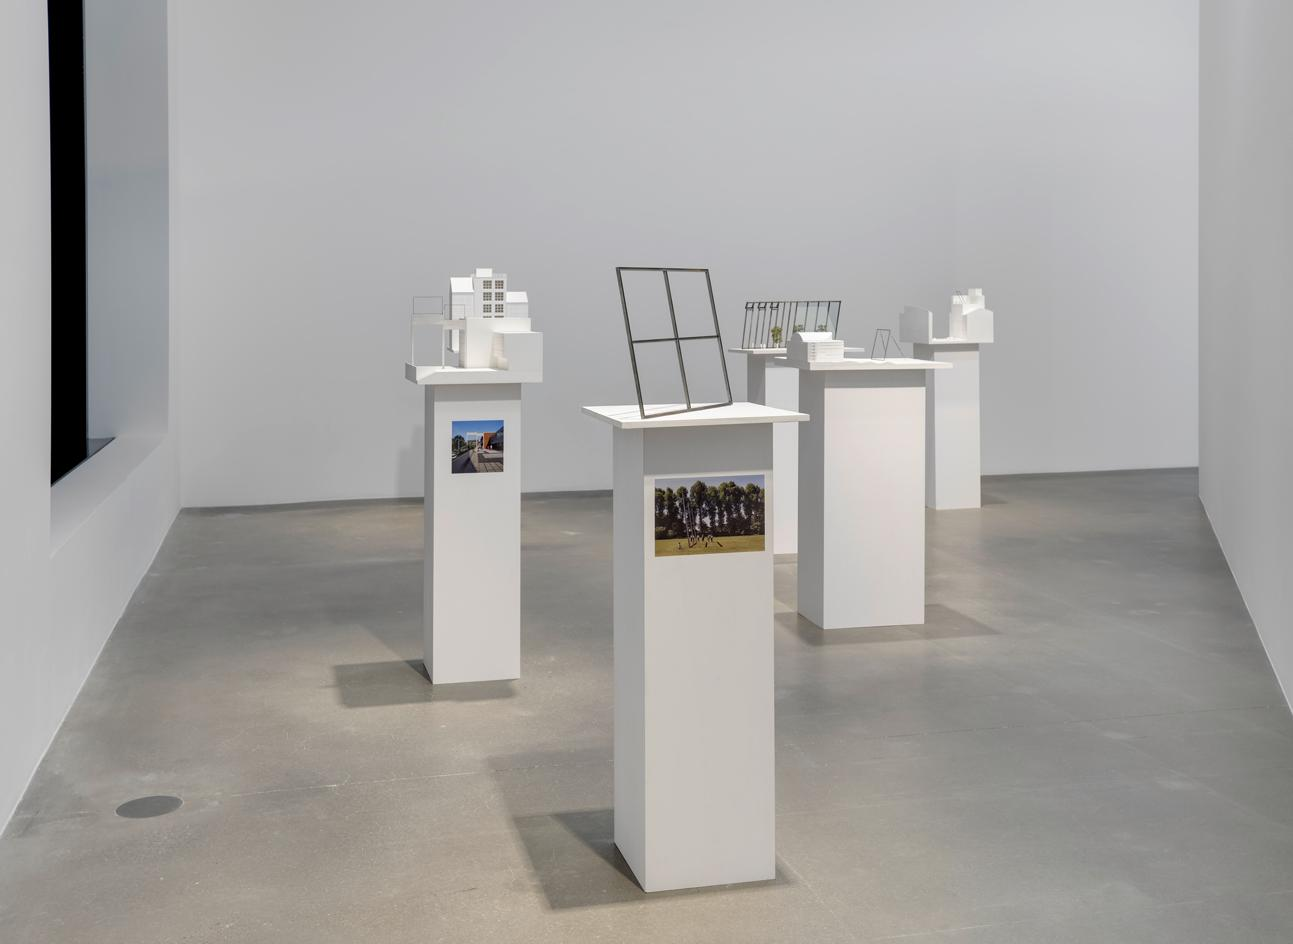 Installation view of Isa Genzken's architectural models at Hauser & Wirth